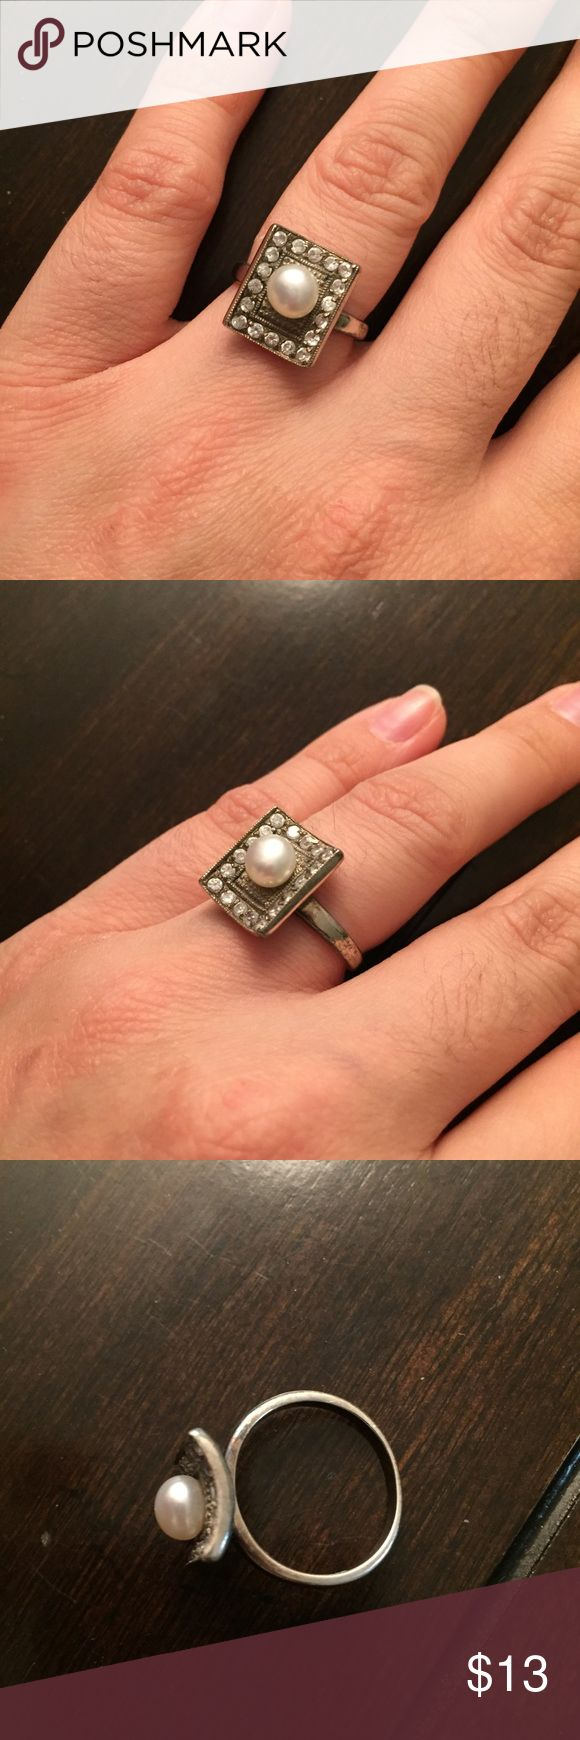 """Pearl Ring Not sure what kind of silver. After making a purchase, please comment """"yes"""" on anything in my closet that says """"not for sale"""" with a price of $0 and I will ship that with your purchase for free! BOGO whole closet is also available. Jewelry Rings"""